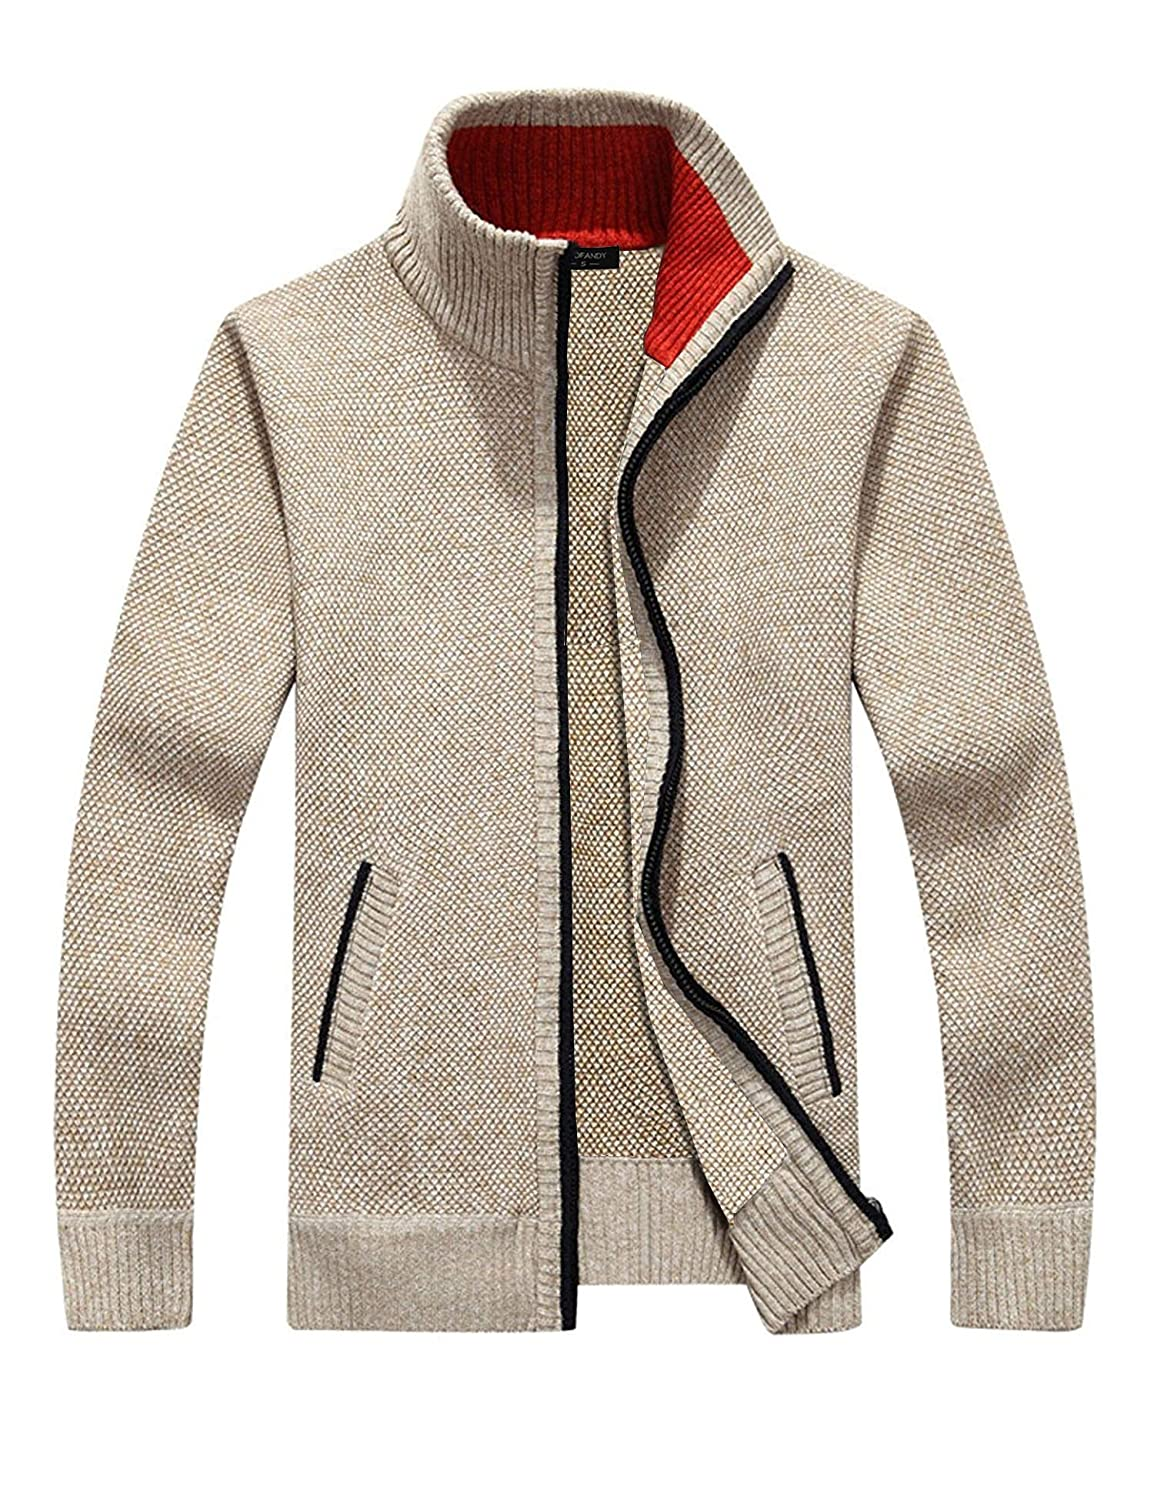 Simbama Mens Full Zip Up Sweaters Lightweight Casual Slim Fit Cardigan with Pockets SXJ007474